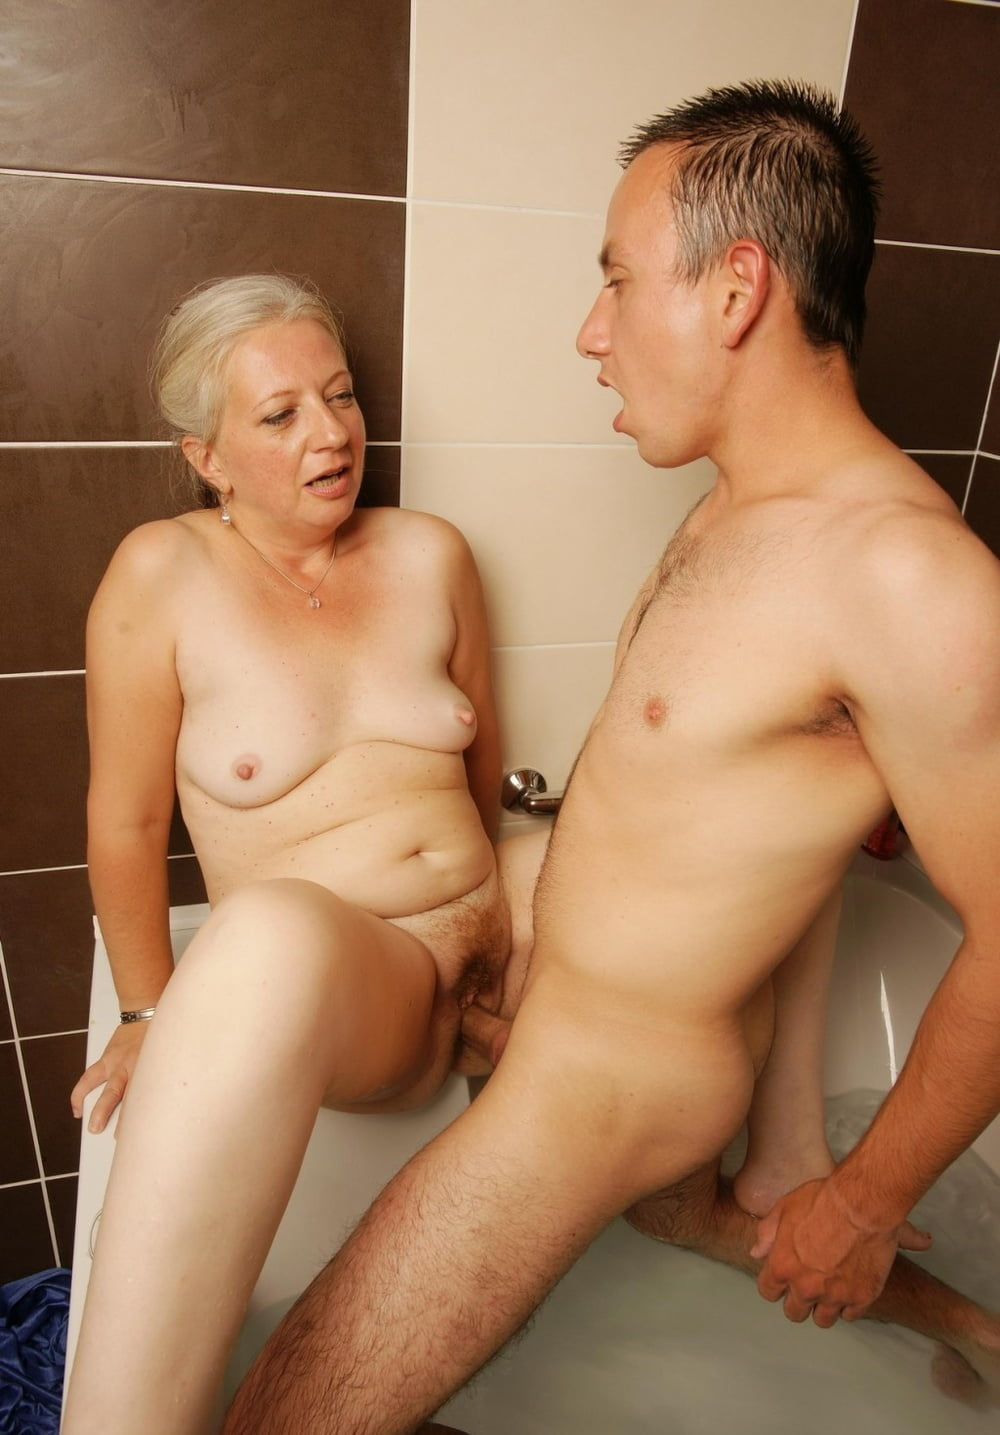 Mature female young male sex